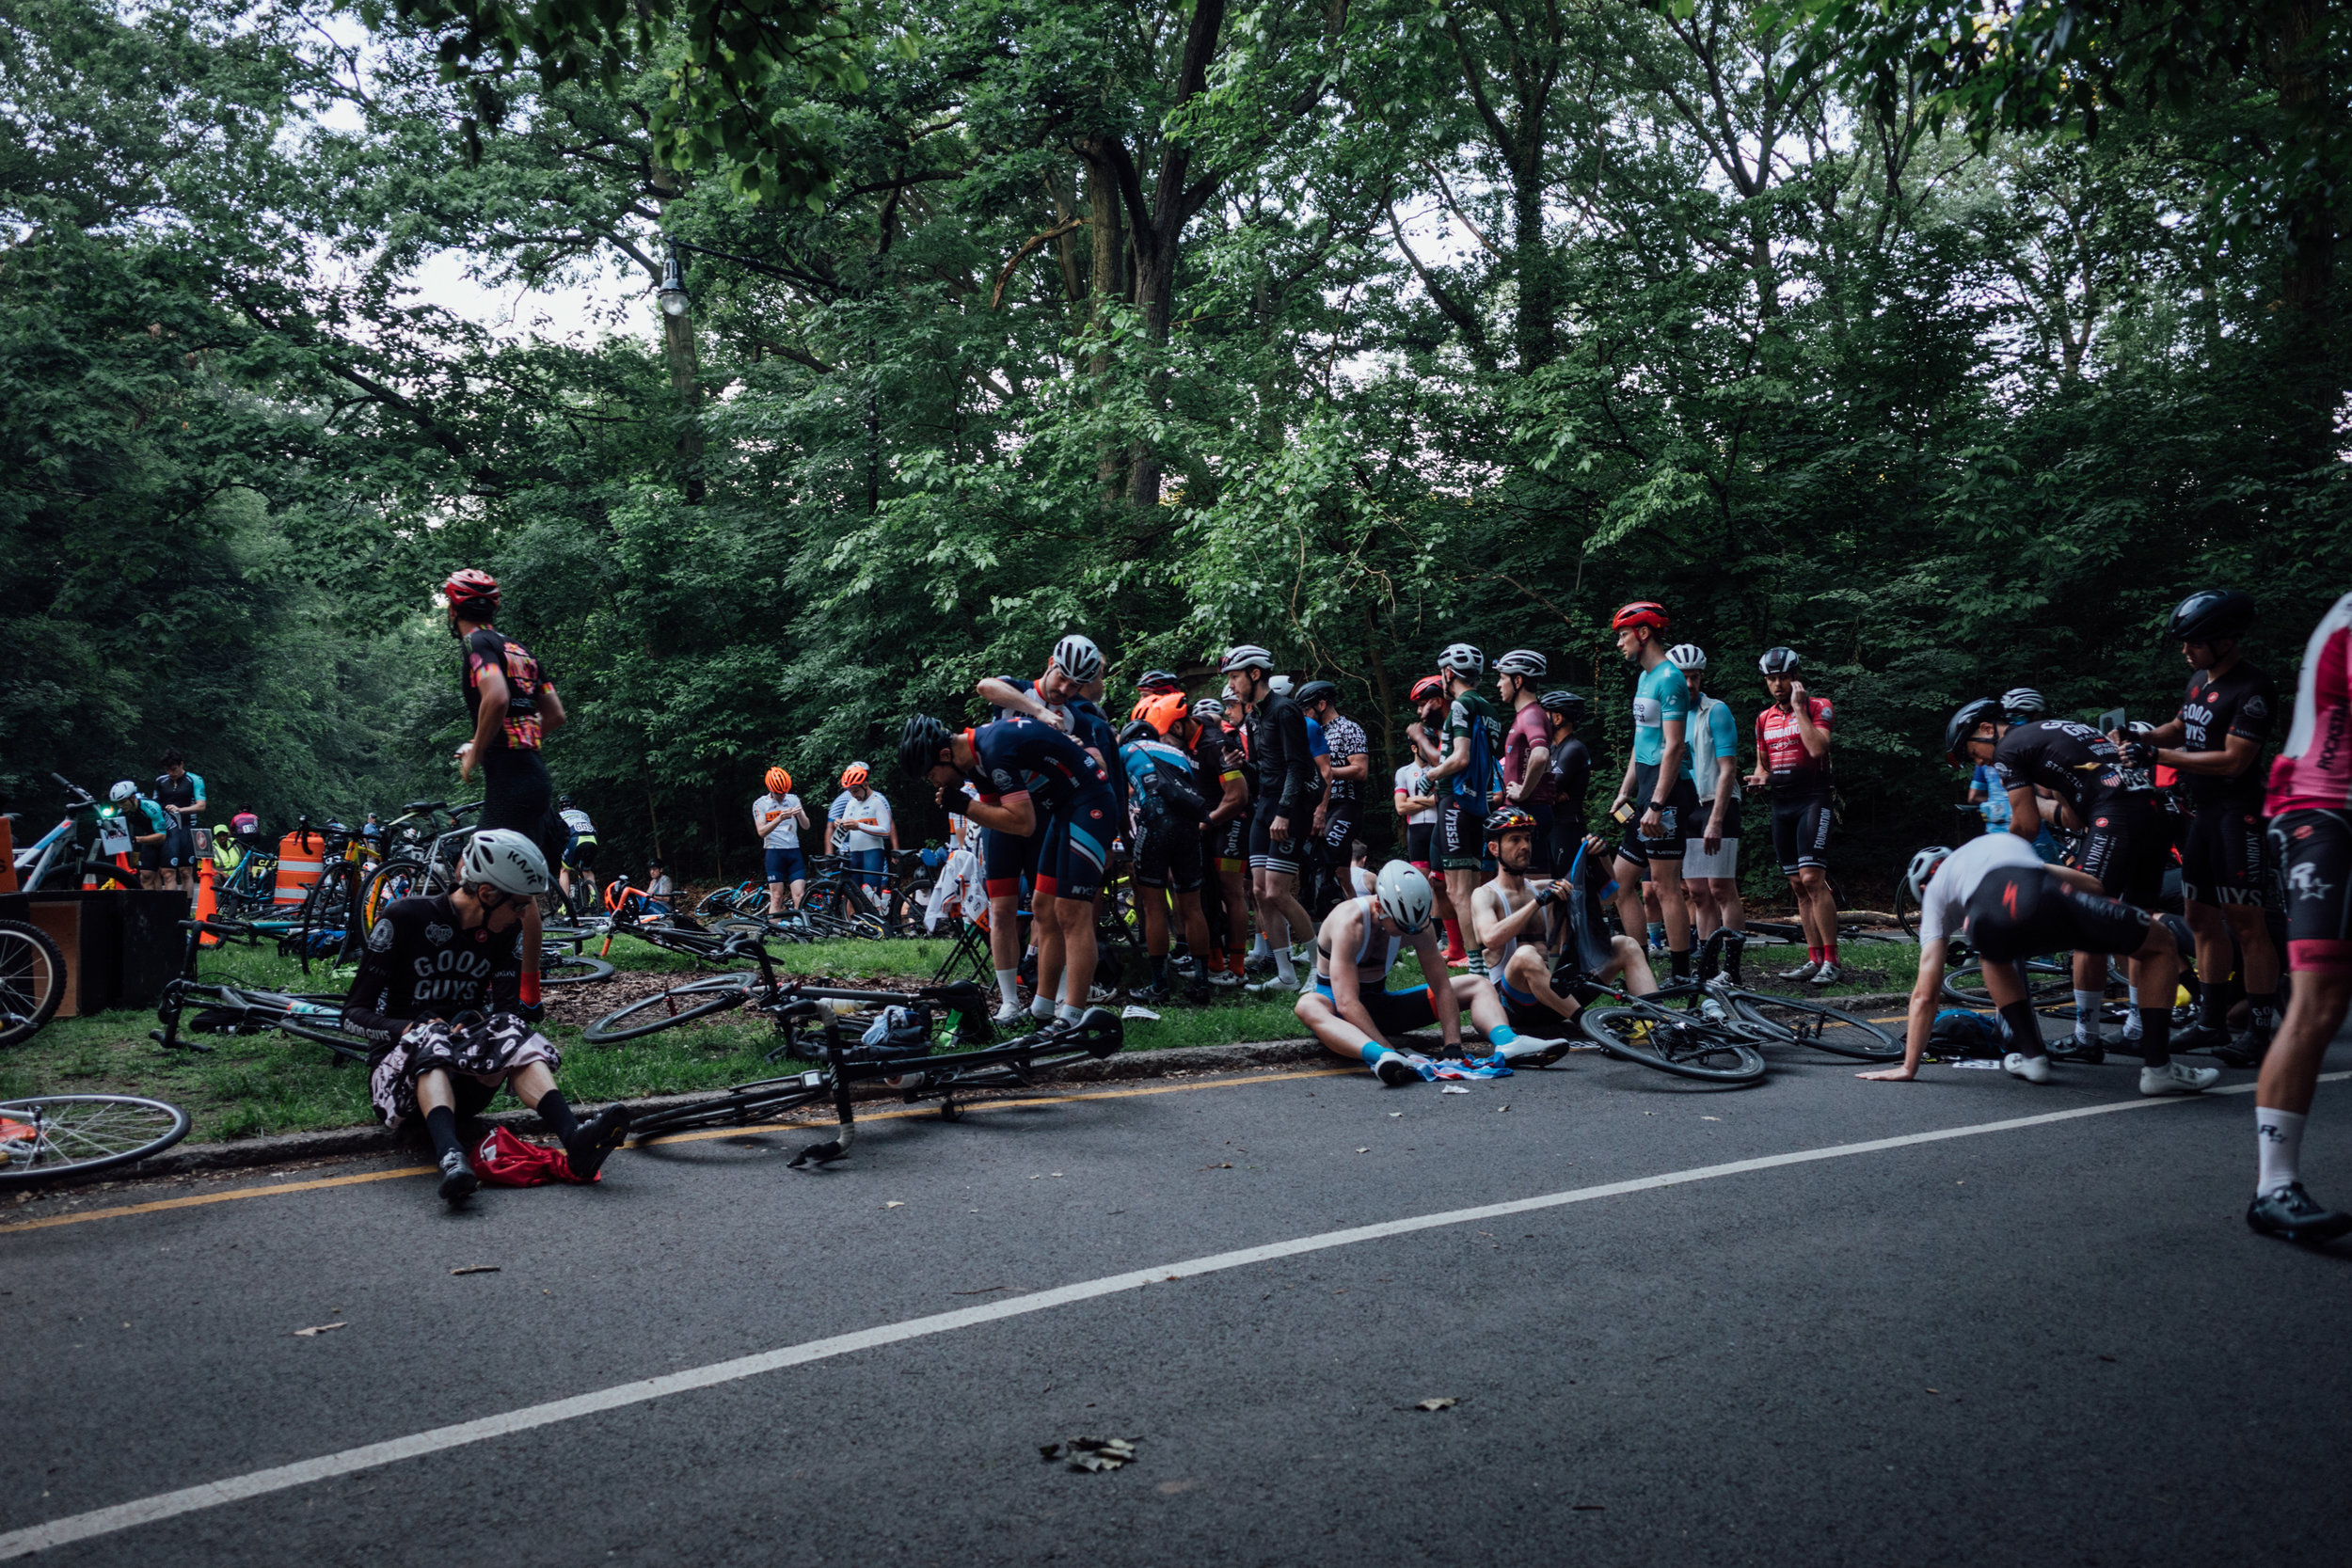 The usual early morning race scene in New York City.